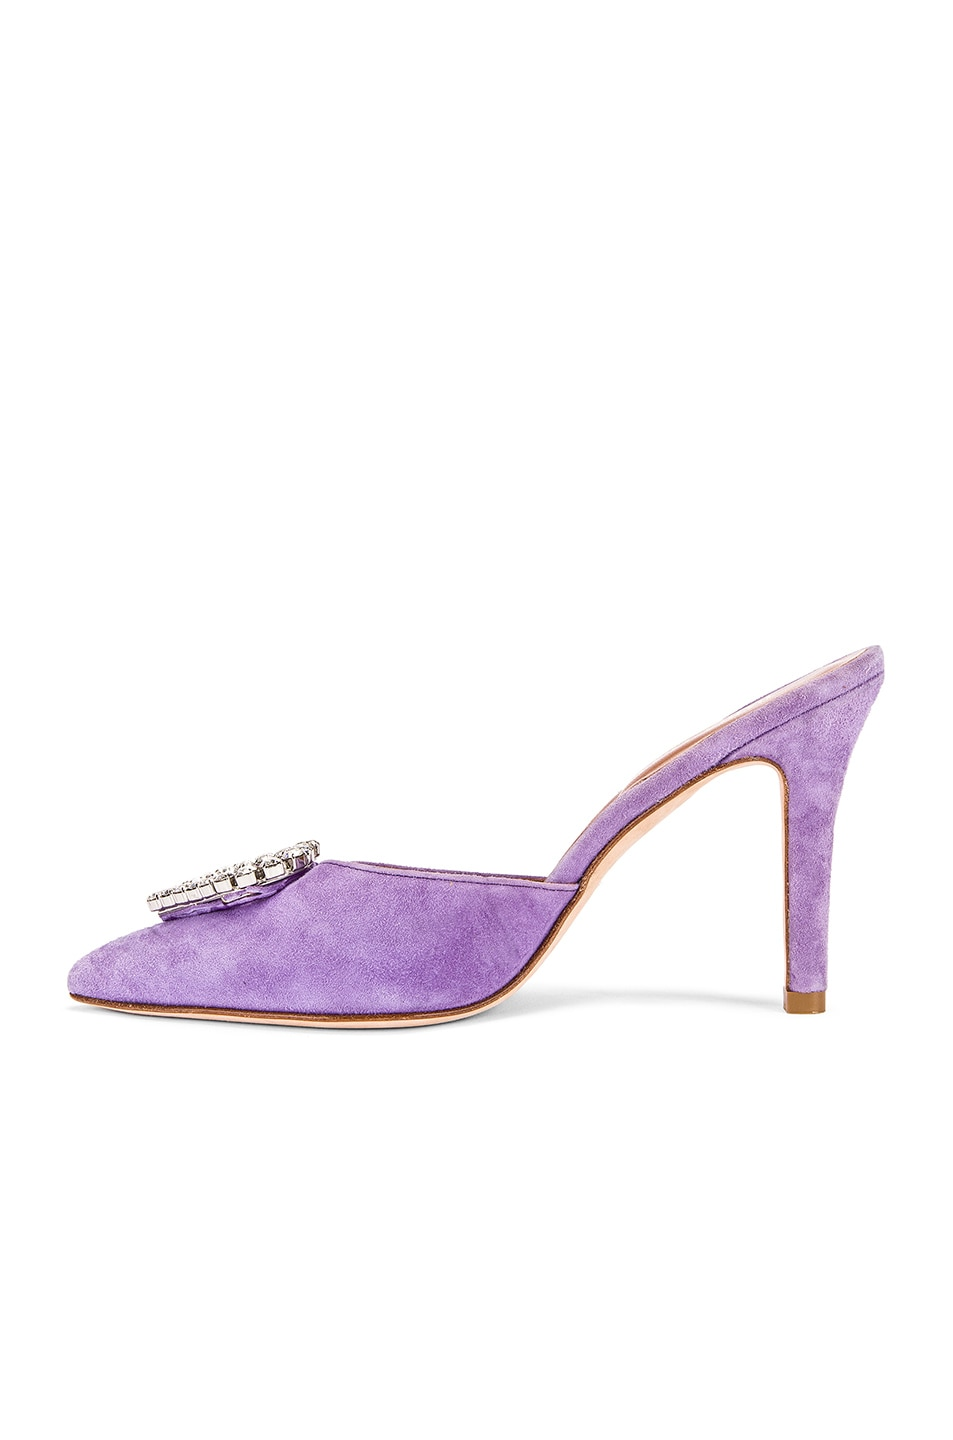 Image 5 of Paris Texas Crystal and Suede Stiletto Mule in Lilac